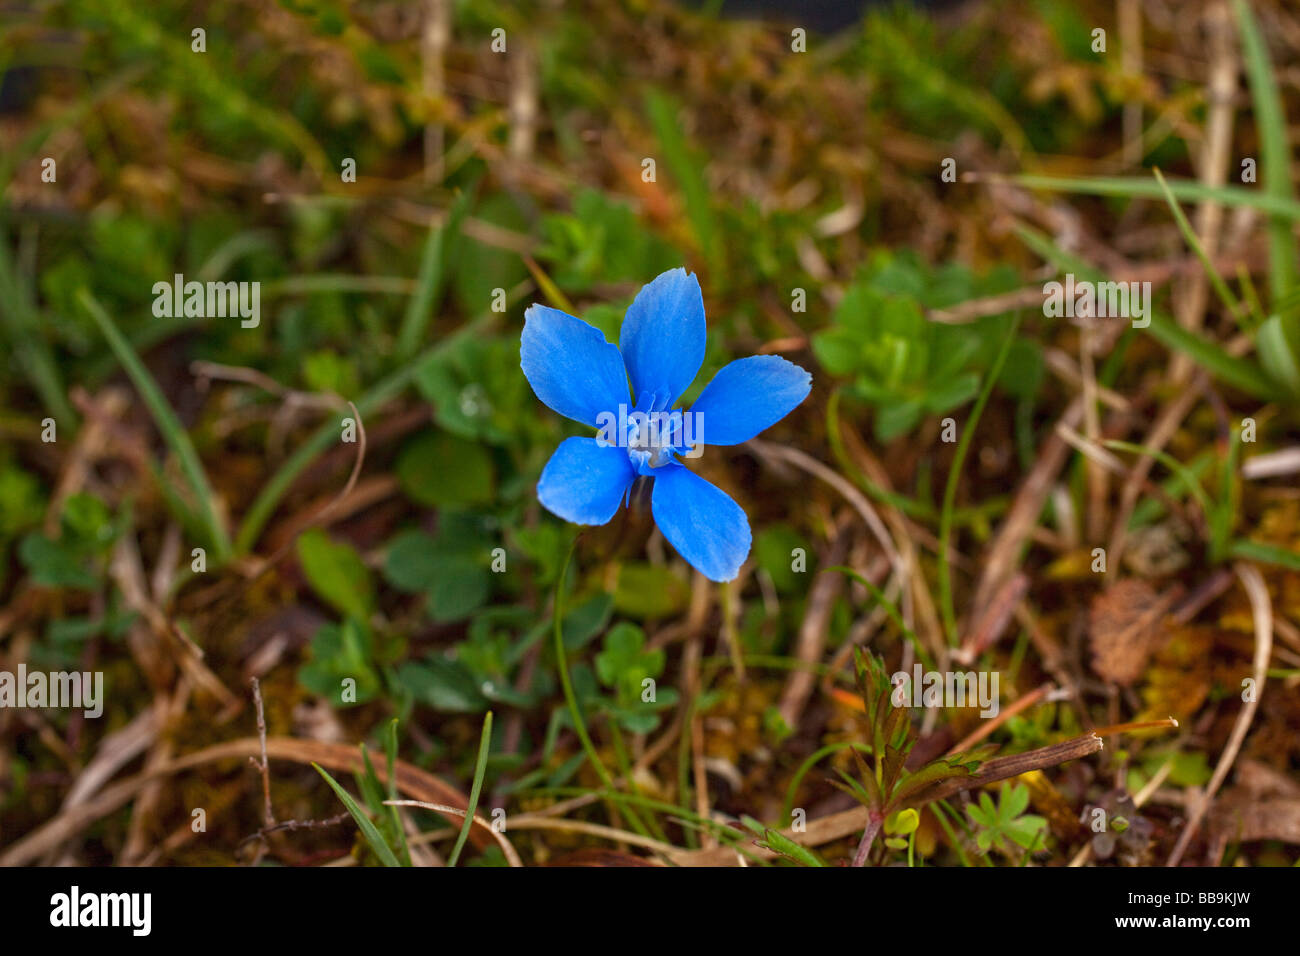 Spring Gentian Gentiana verna growing in limestone of the Burren County Clare Ireland Eire Irish Republic Europe - Stock Image